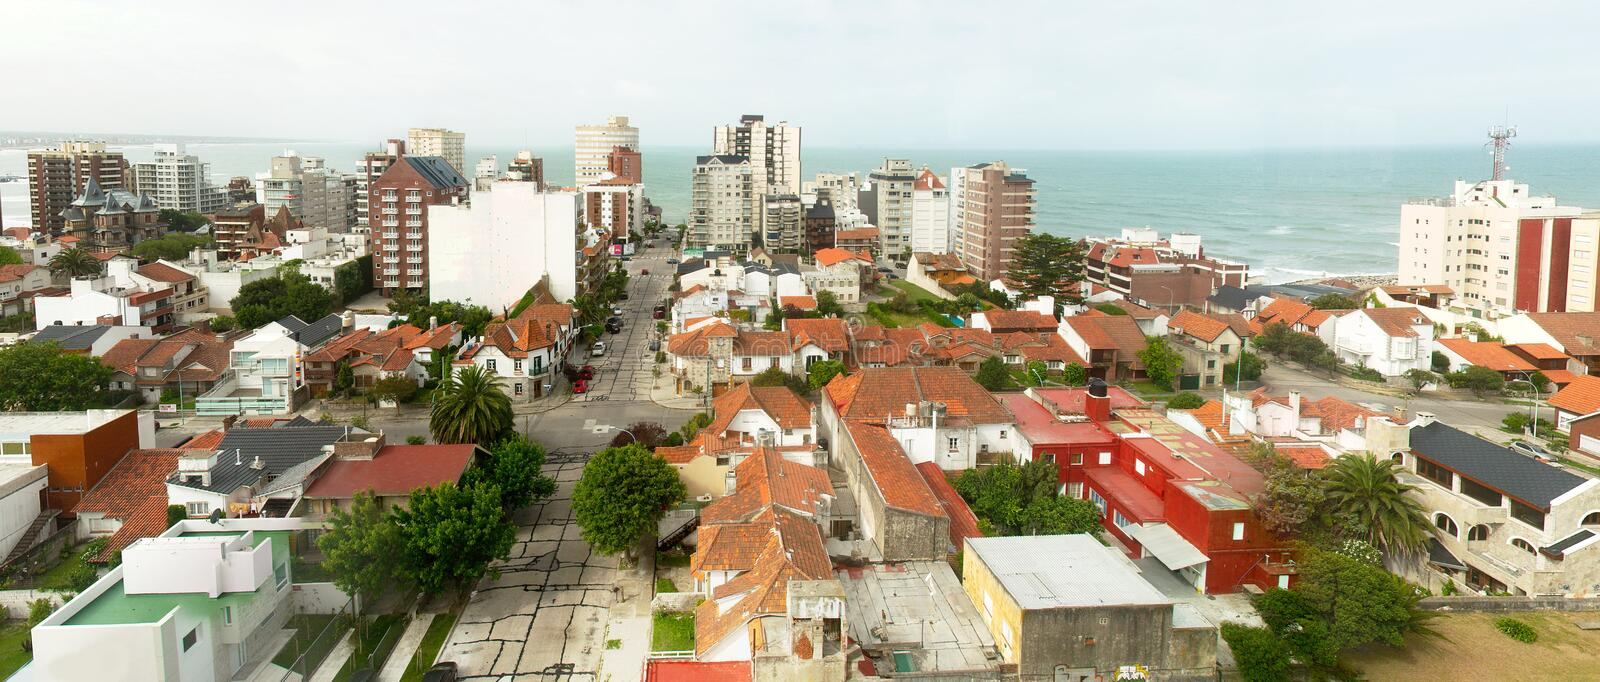 Residential area by the sea in Mar del Plata, Argentina. Panoramic view of a residential area by the sea. Mar del Plata, Buenos Aires, Argentina stock photos